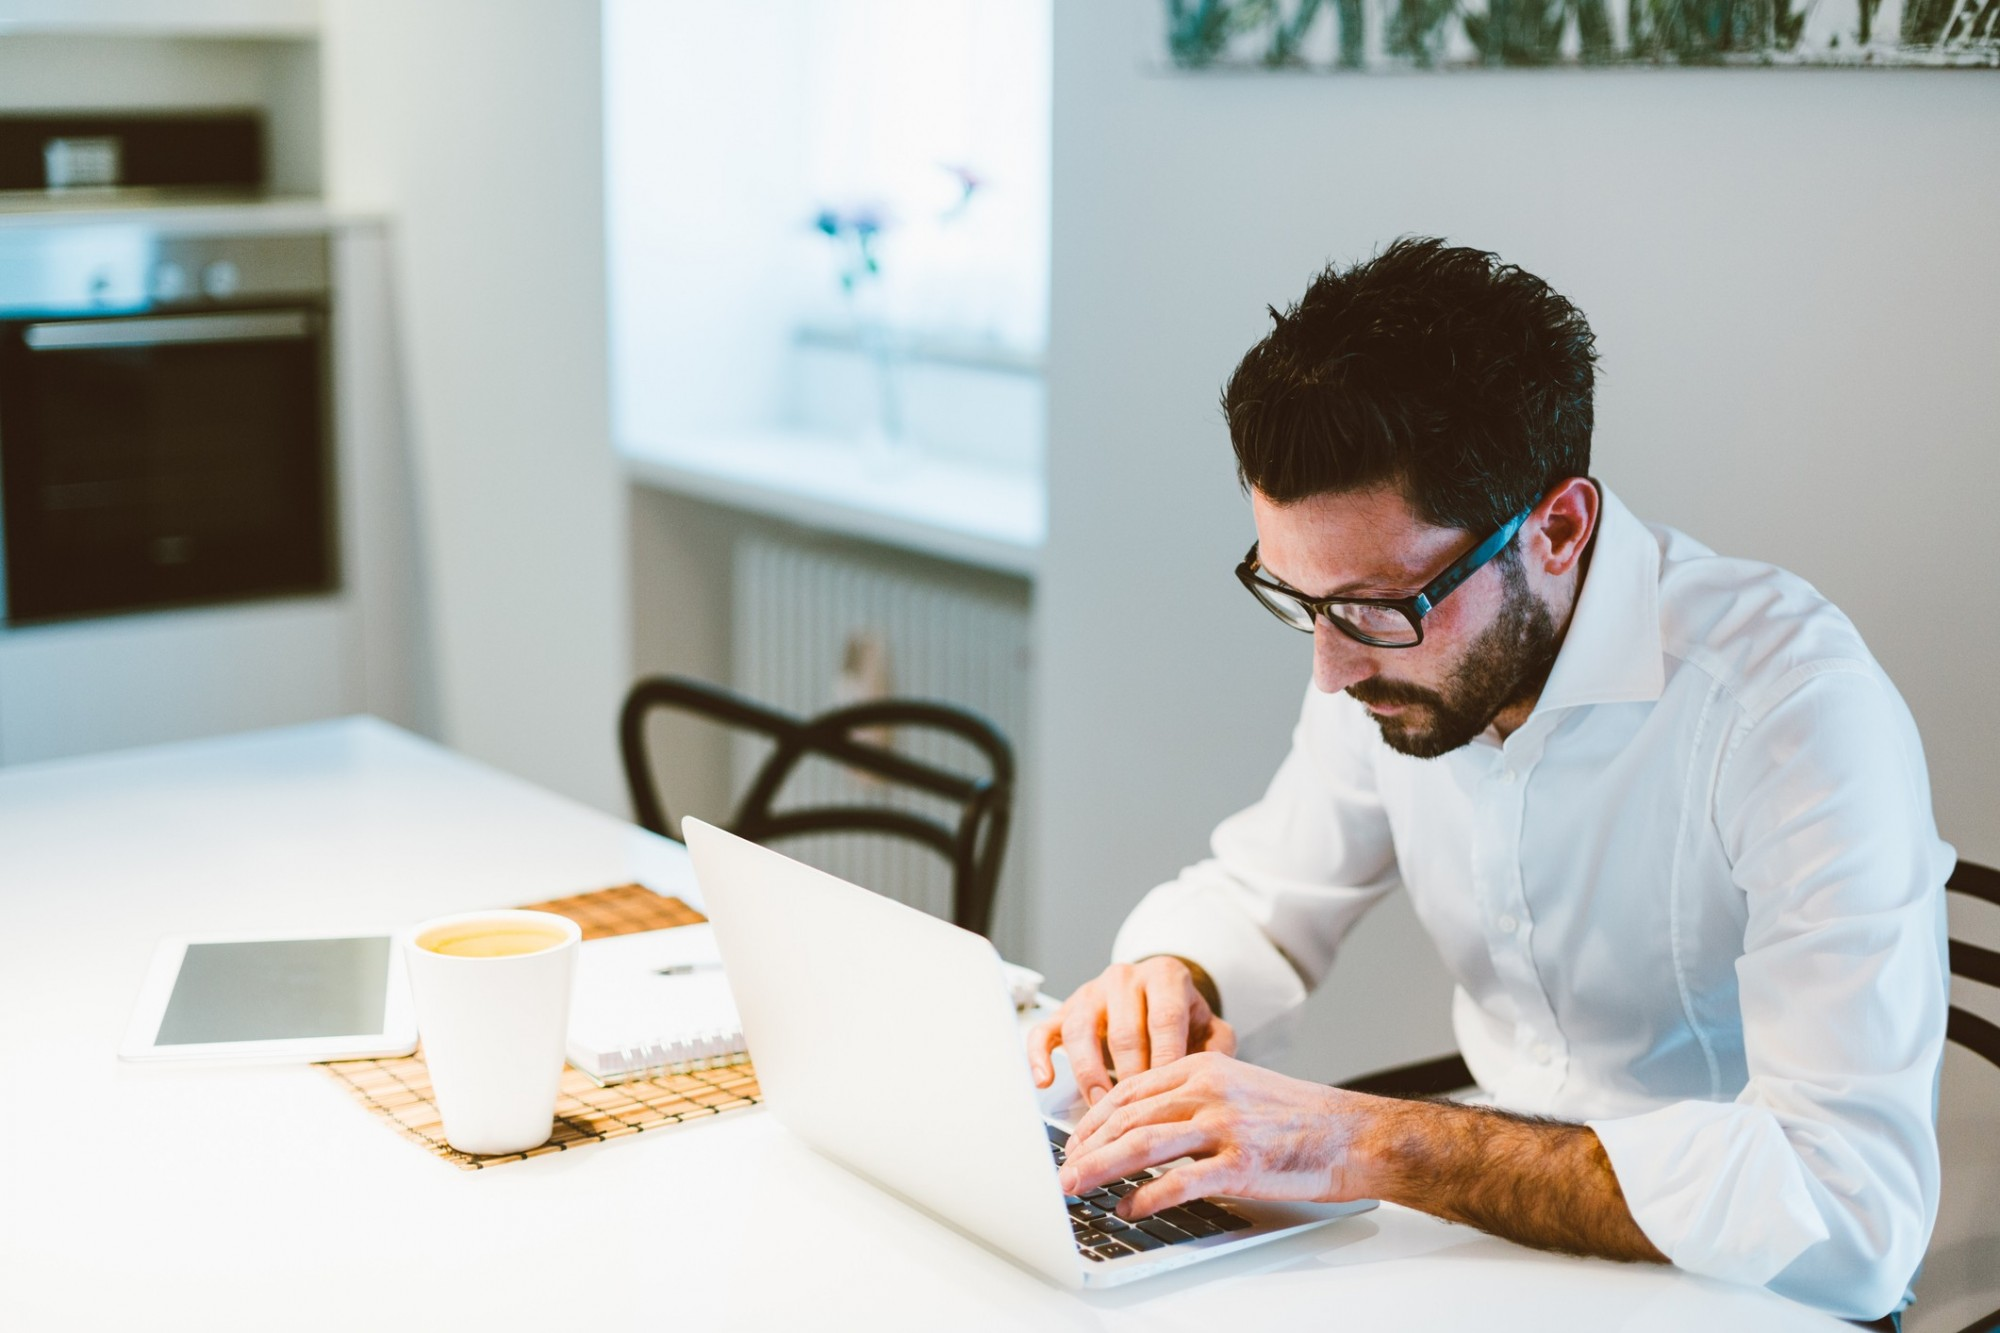 Man sitting at a table with a laptop and cup of coffee